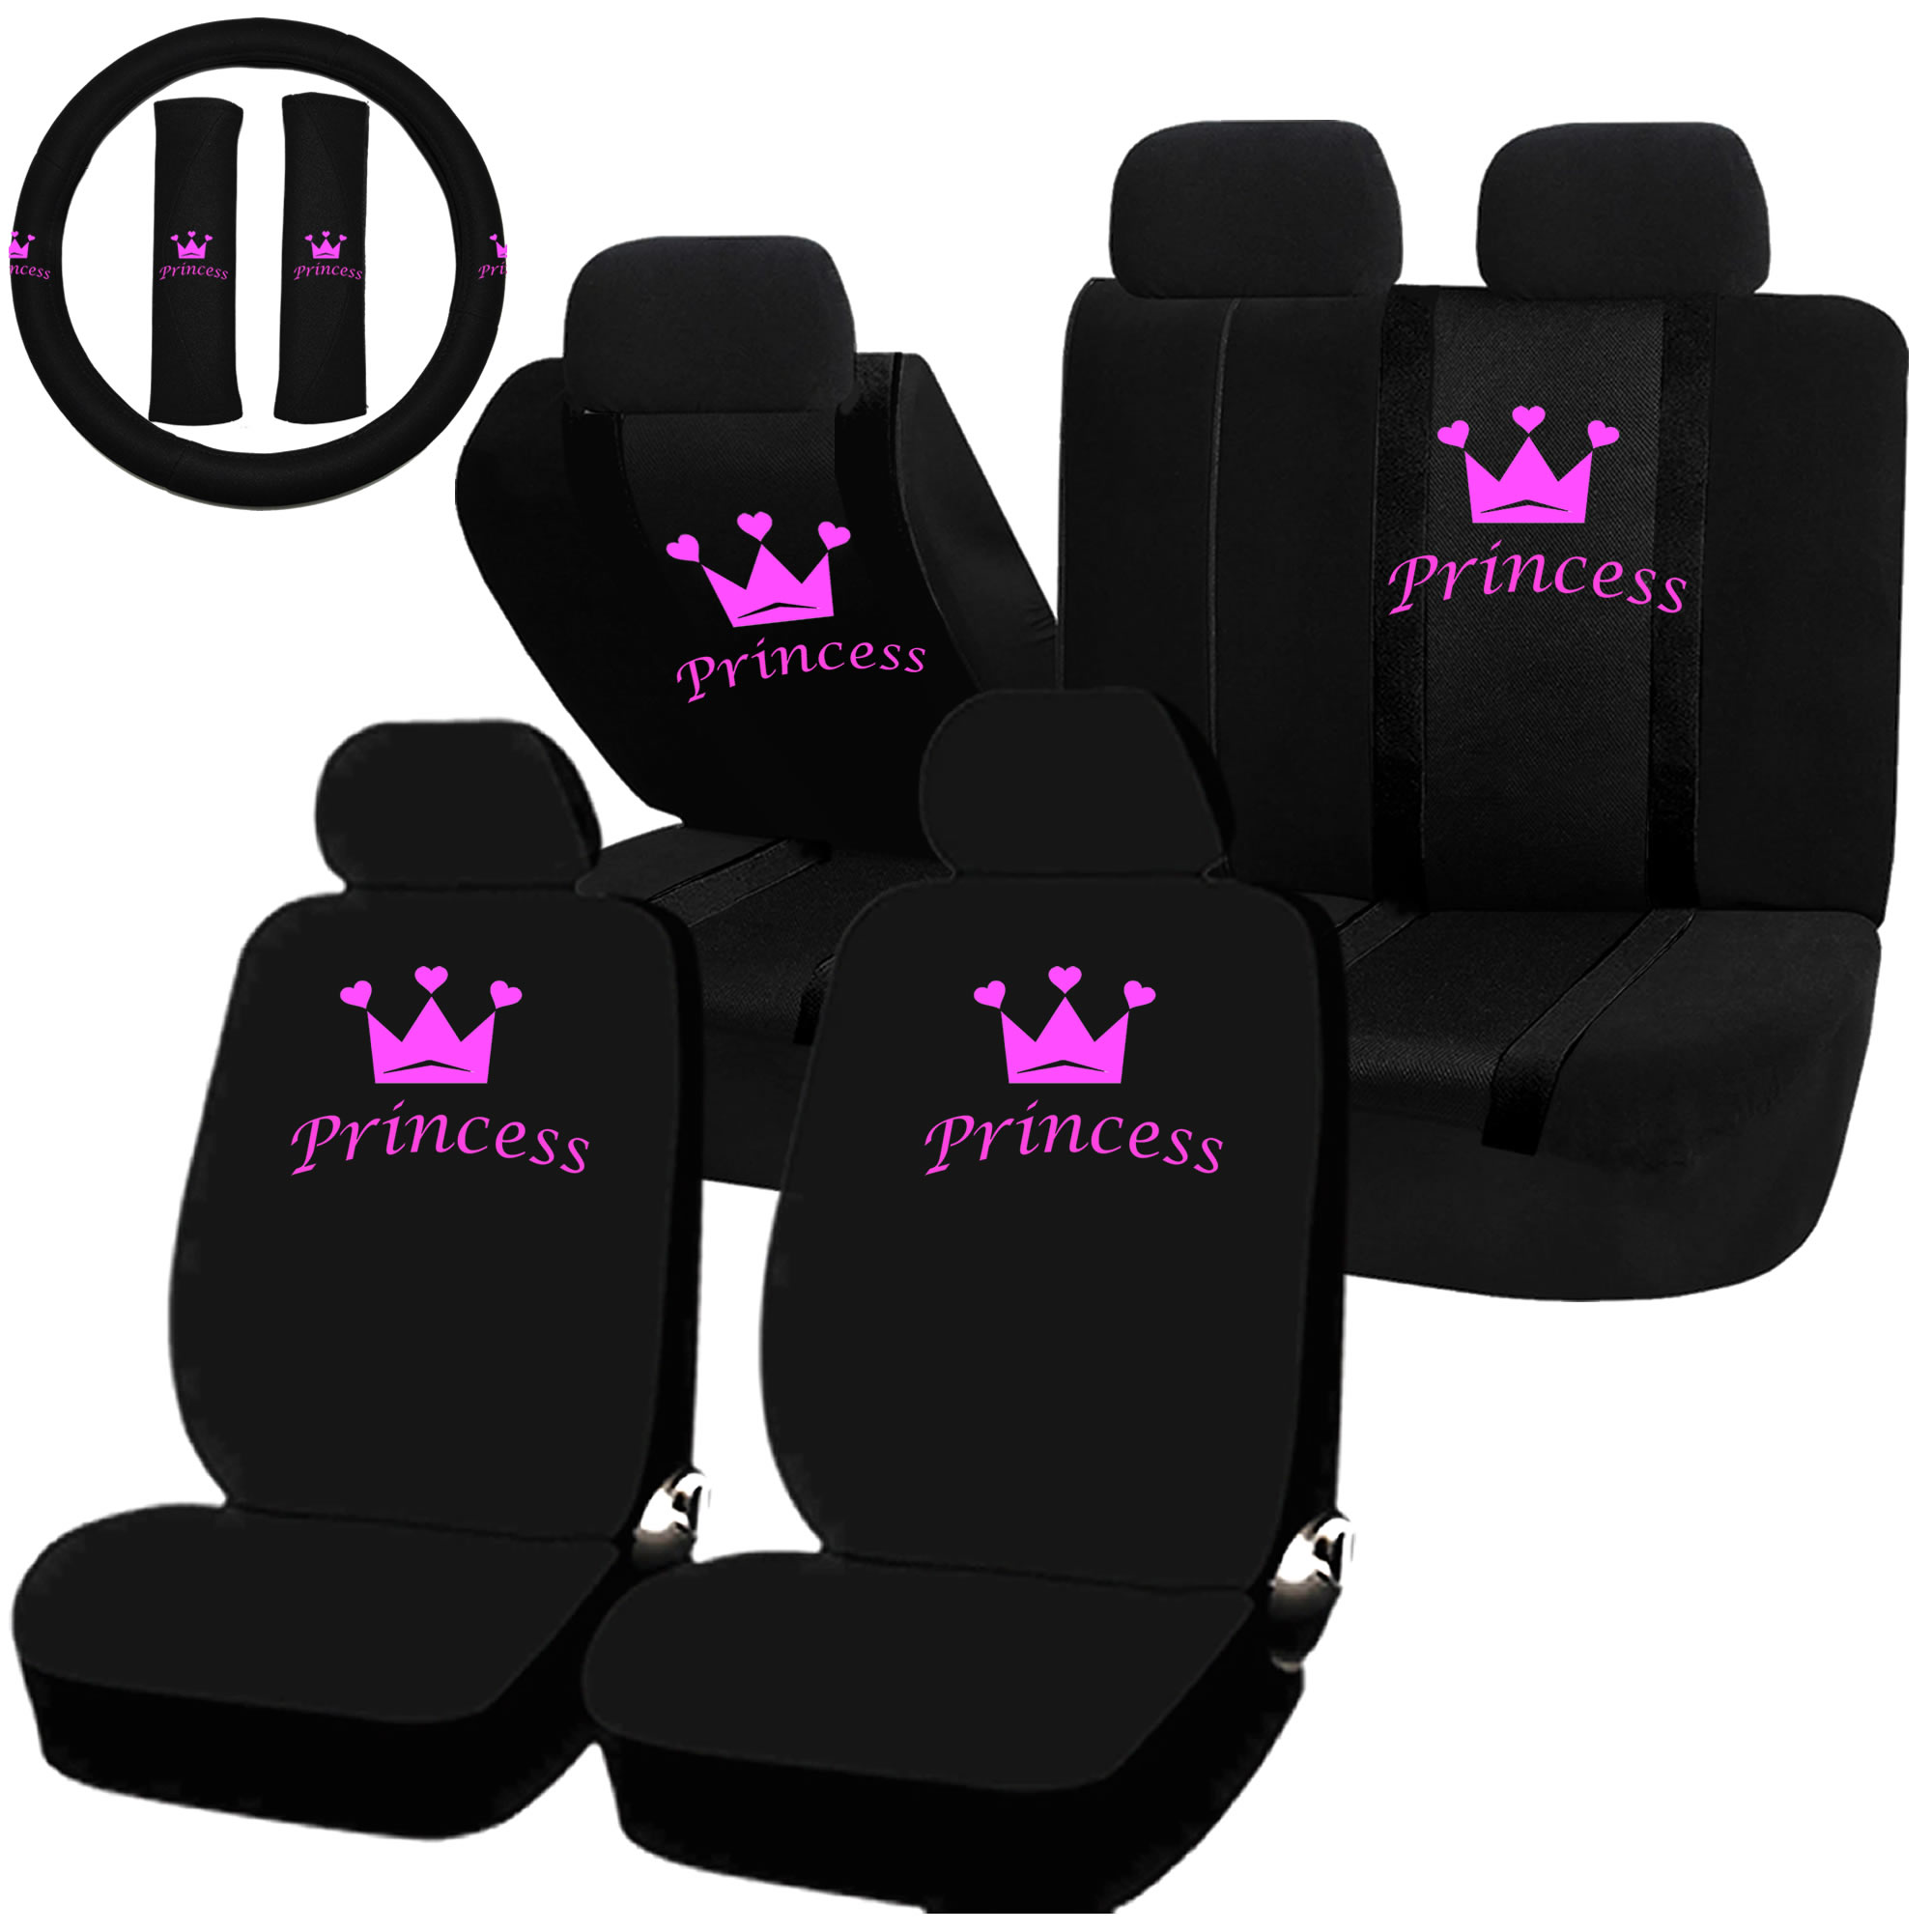 22pc Princess Pink Crown Seat Covers & Steering Wheel Set Universal Car Truck SUV